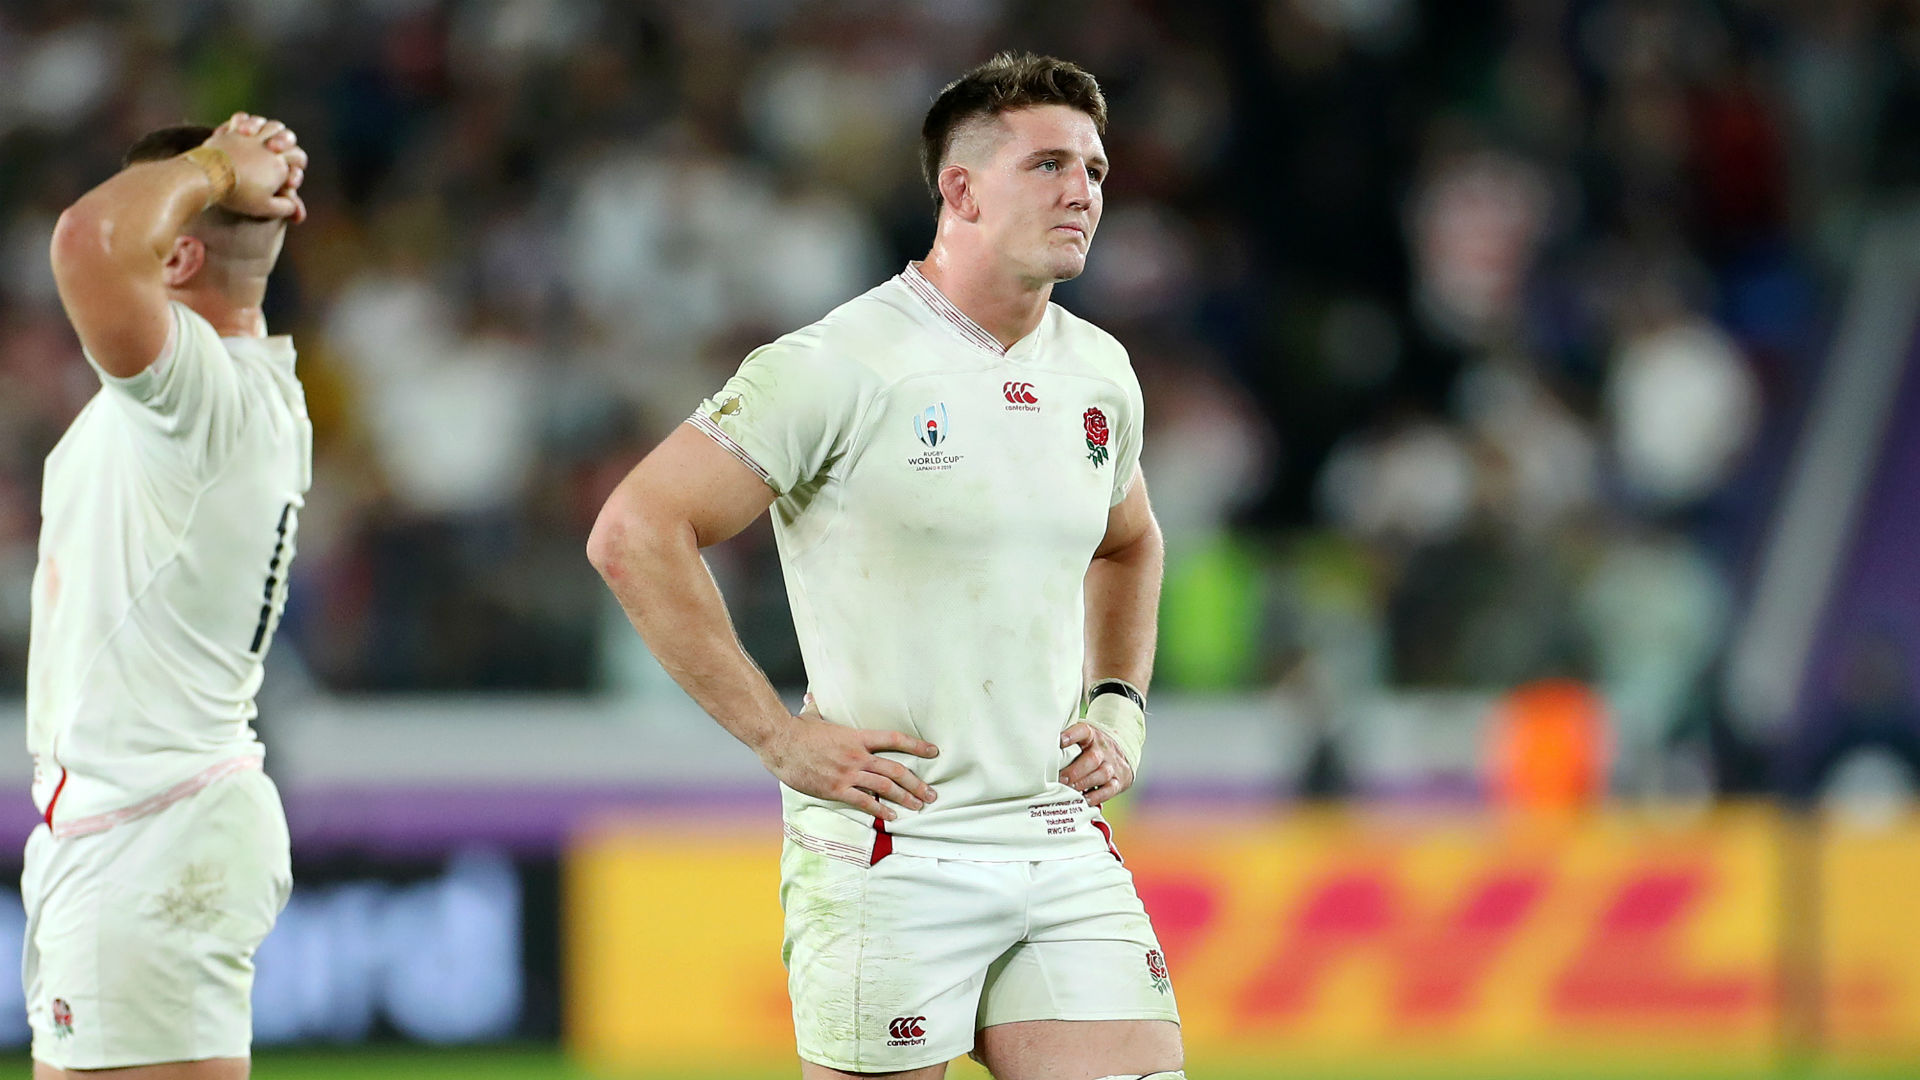 Rugby World Cup 2019: Gatland jibe haunts ragged England as South Africa play their final